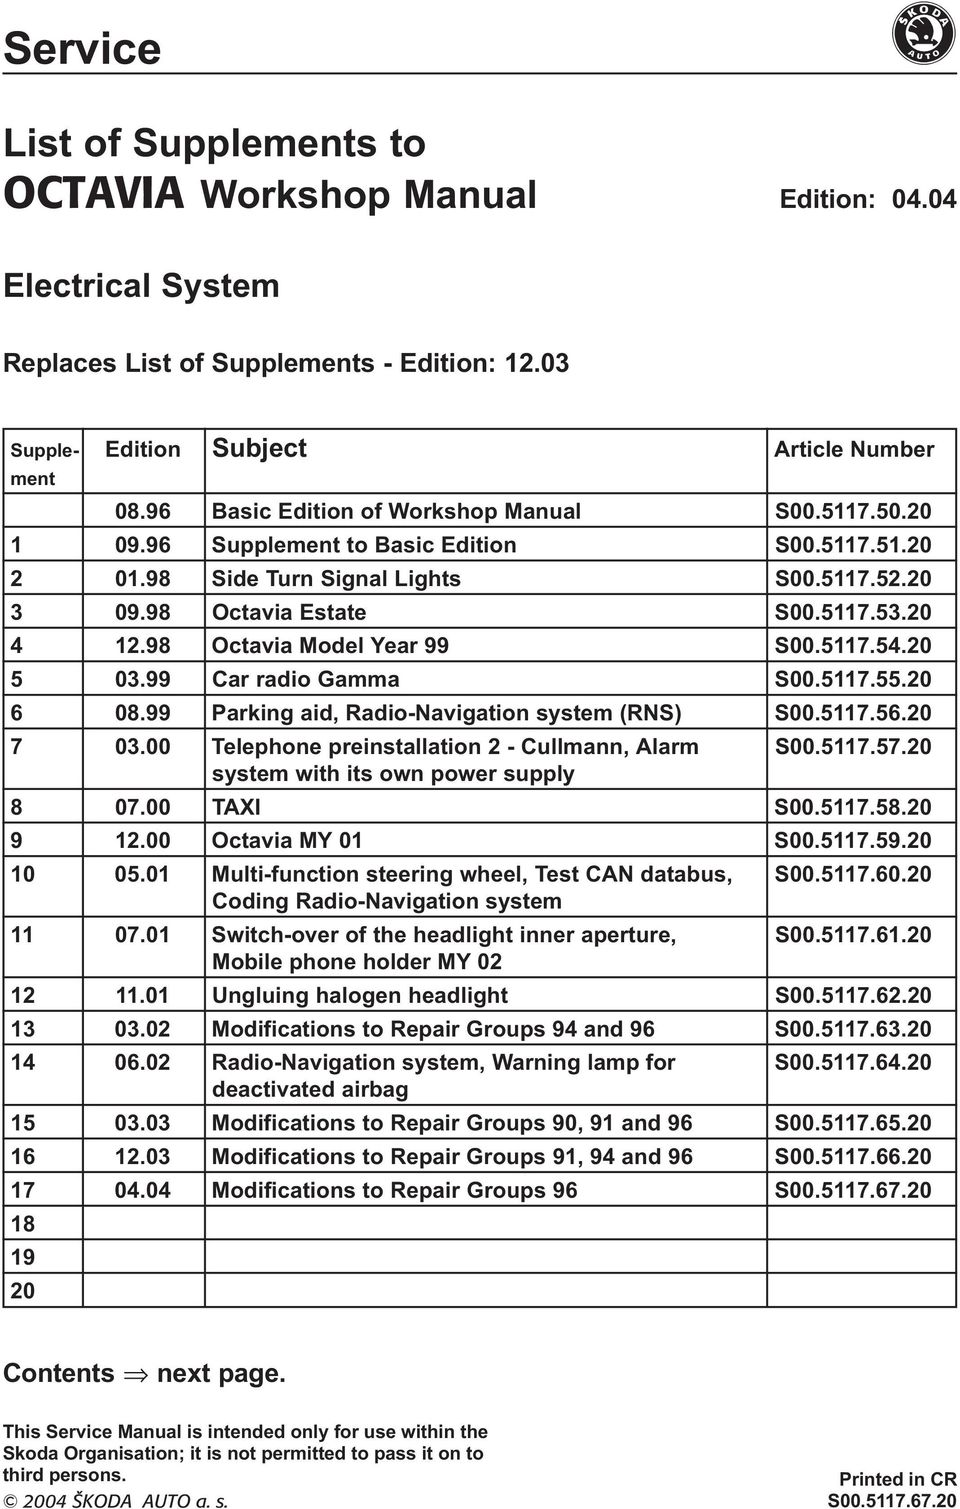 Outstanding Clarion Xmd3 Aux Wiring Diagram Images - Everything You ...